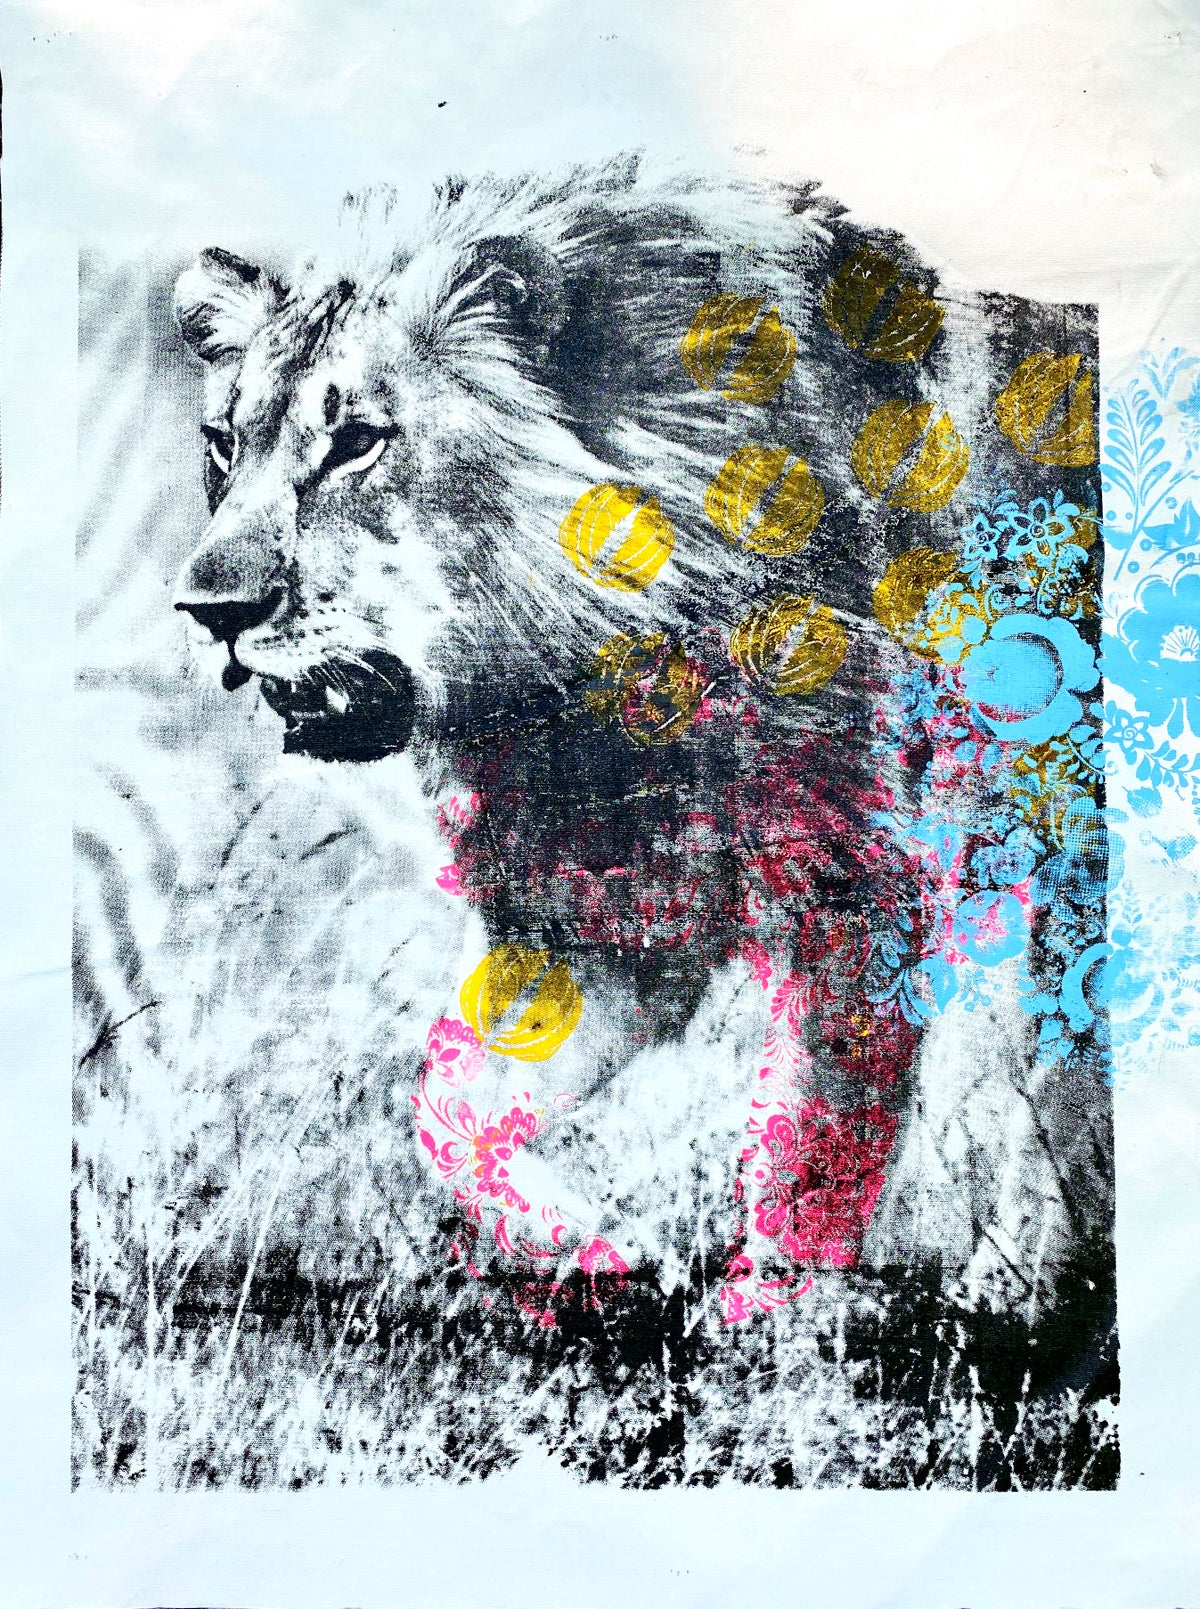 Image of Lion with flowers